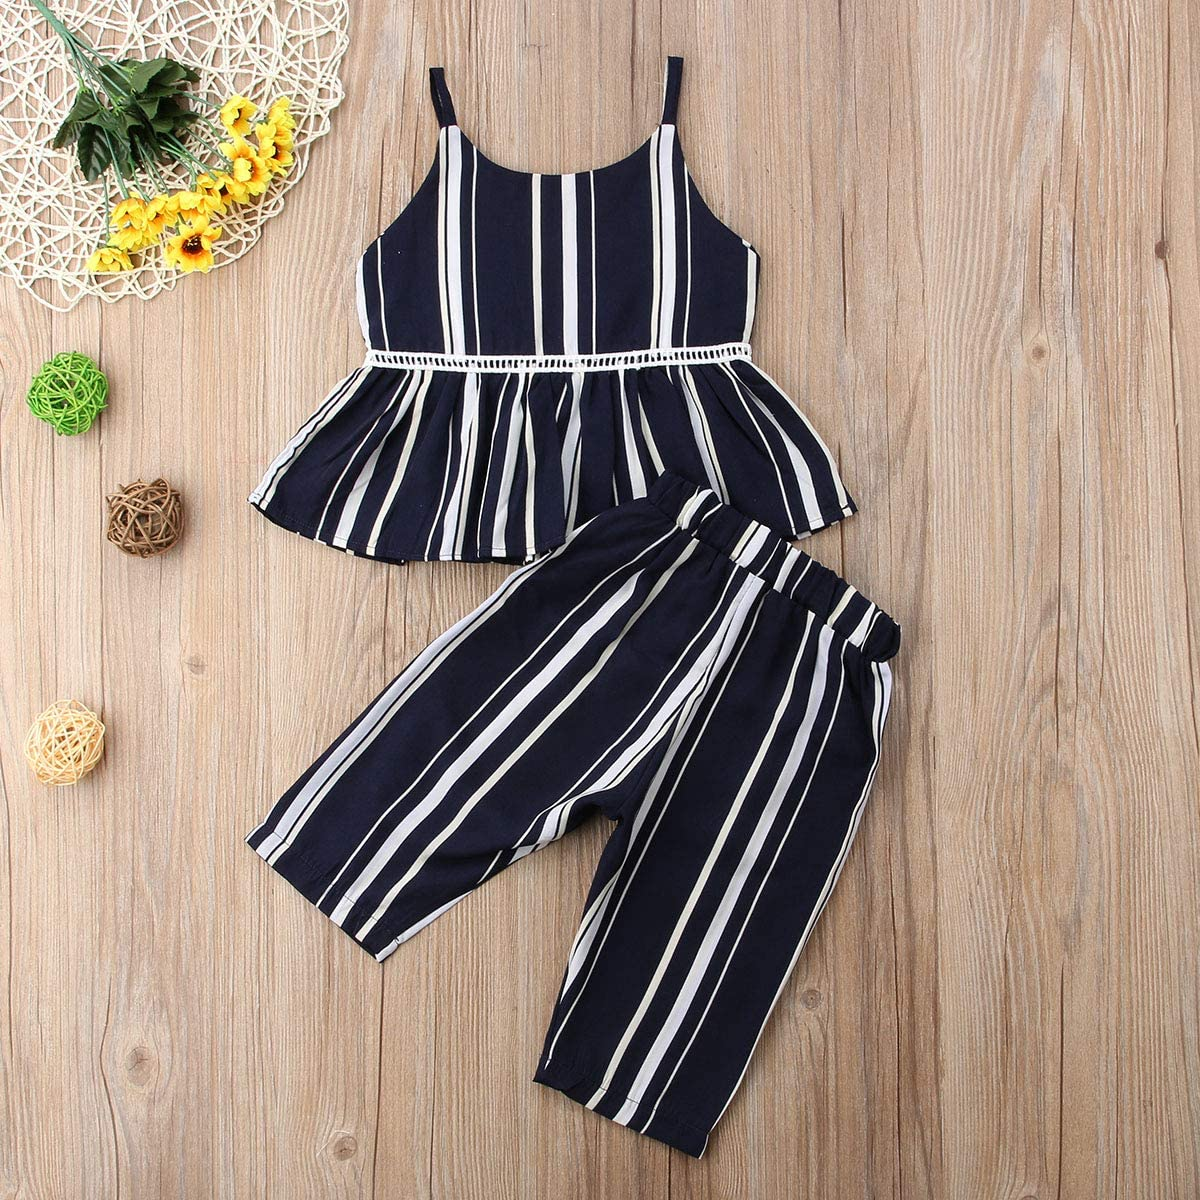 Toddler Baby Girl Sleeveless Solid Color T-Shirt Tops Striped Short Pants Outfits Spring Summer Clothes Set